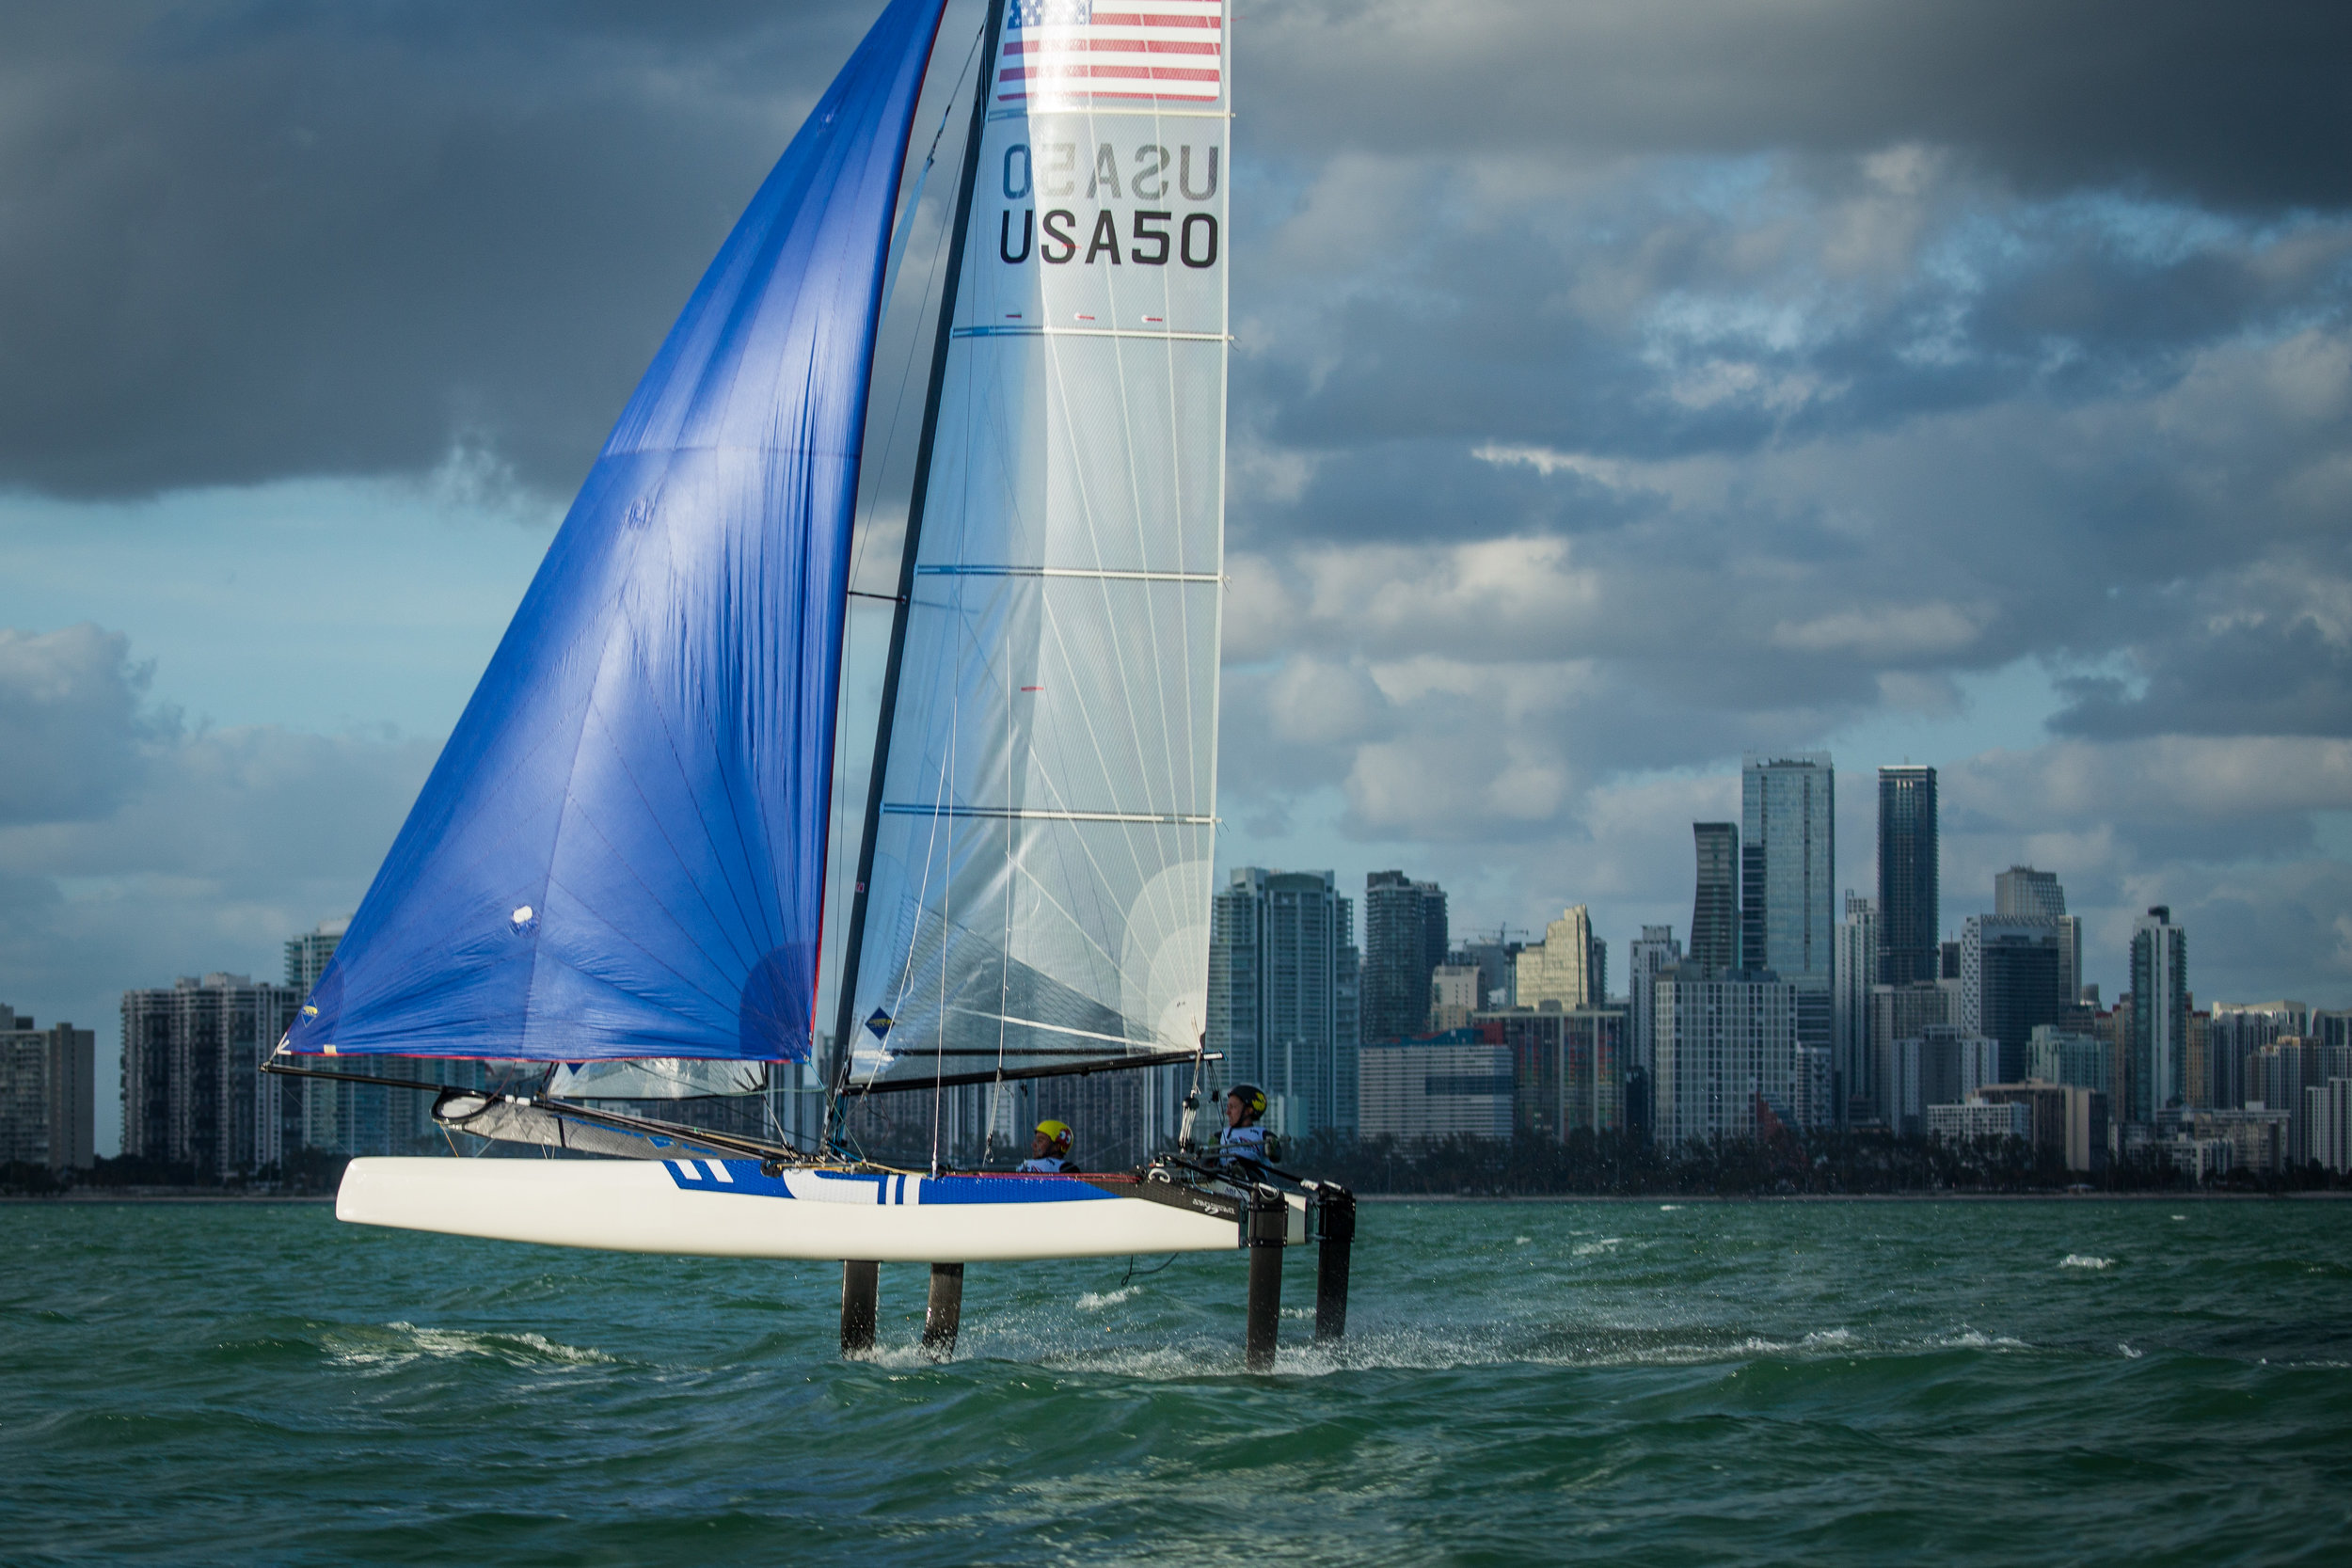 Join Us for a Night of Foiling, Sailing Expertise, and Tokyo 2020! - Monday April 30th | 7:00 - 10:00 PM| CRYC